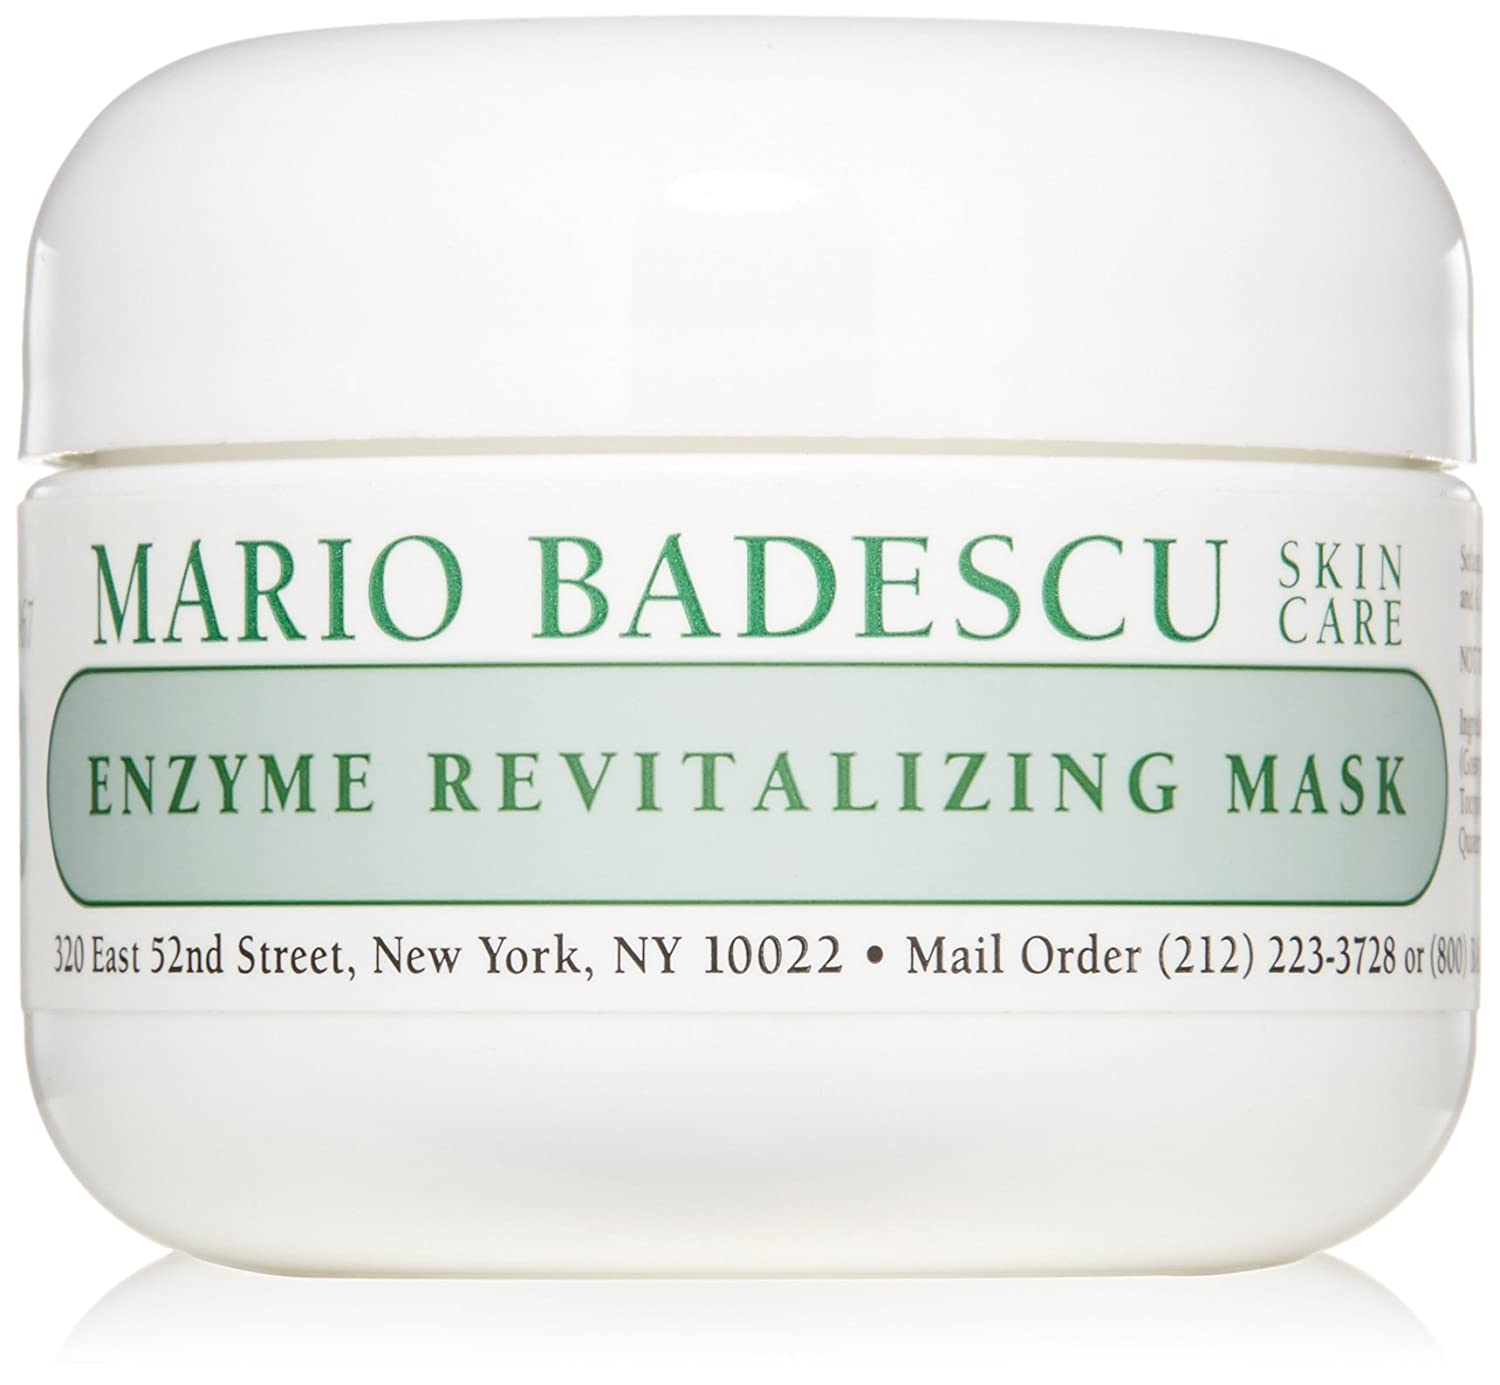 Mario Badescu Enzyme Revitalizing Mask - For Combination/ Dry/ Sensitive Skin Types 59ml